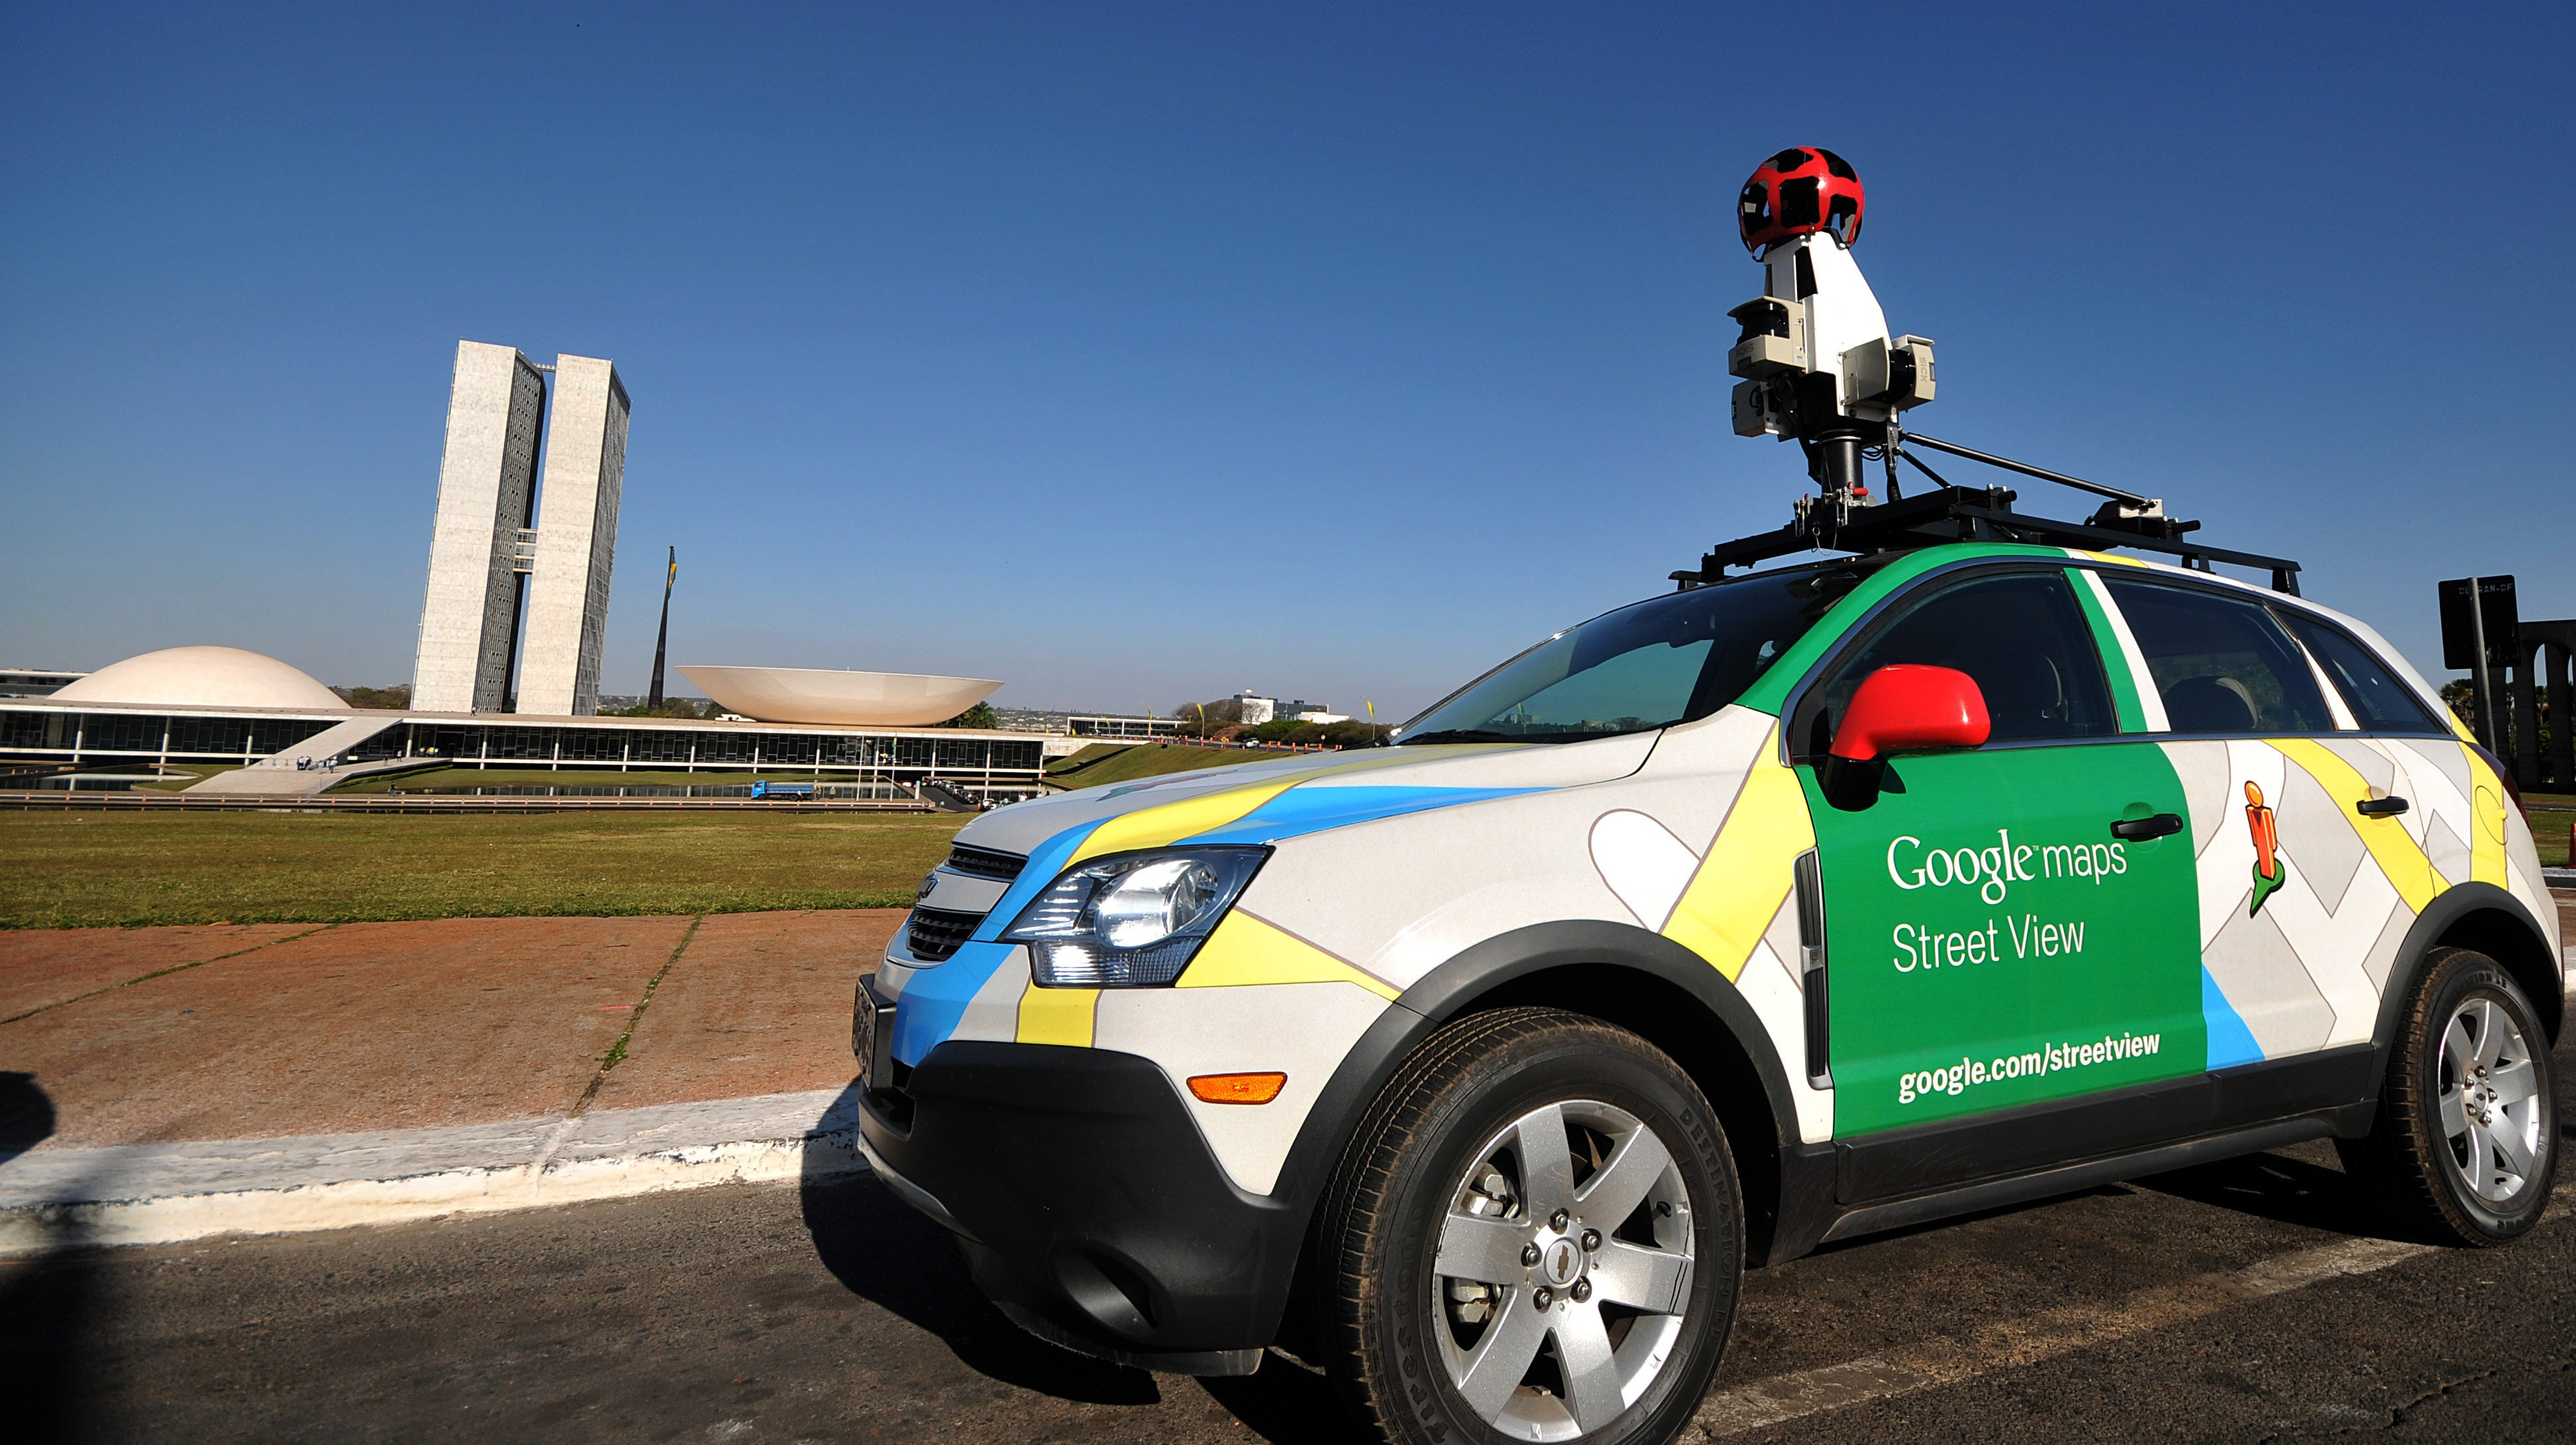 Google's Covered A Whopping 16 Million Kilometres In Street View Imagery